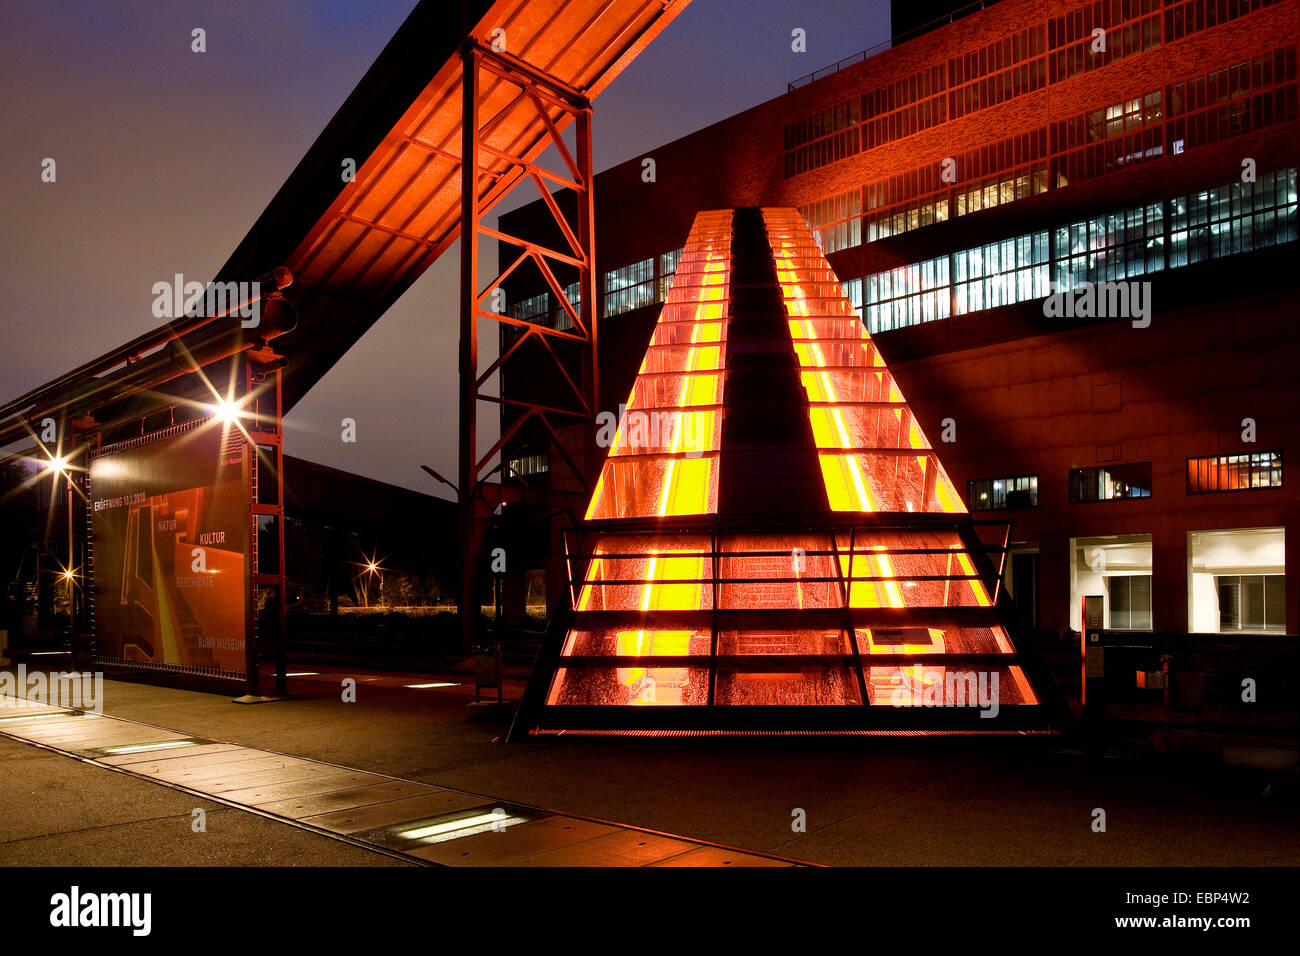 illuminated gangway to the visitor centre of Zollverein Coal Mine Industrial Complex, Germany, North Rhine-Westphalia, - Stock Image